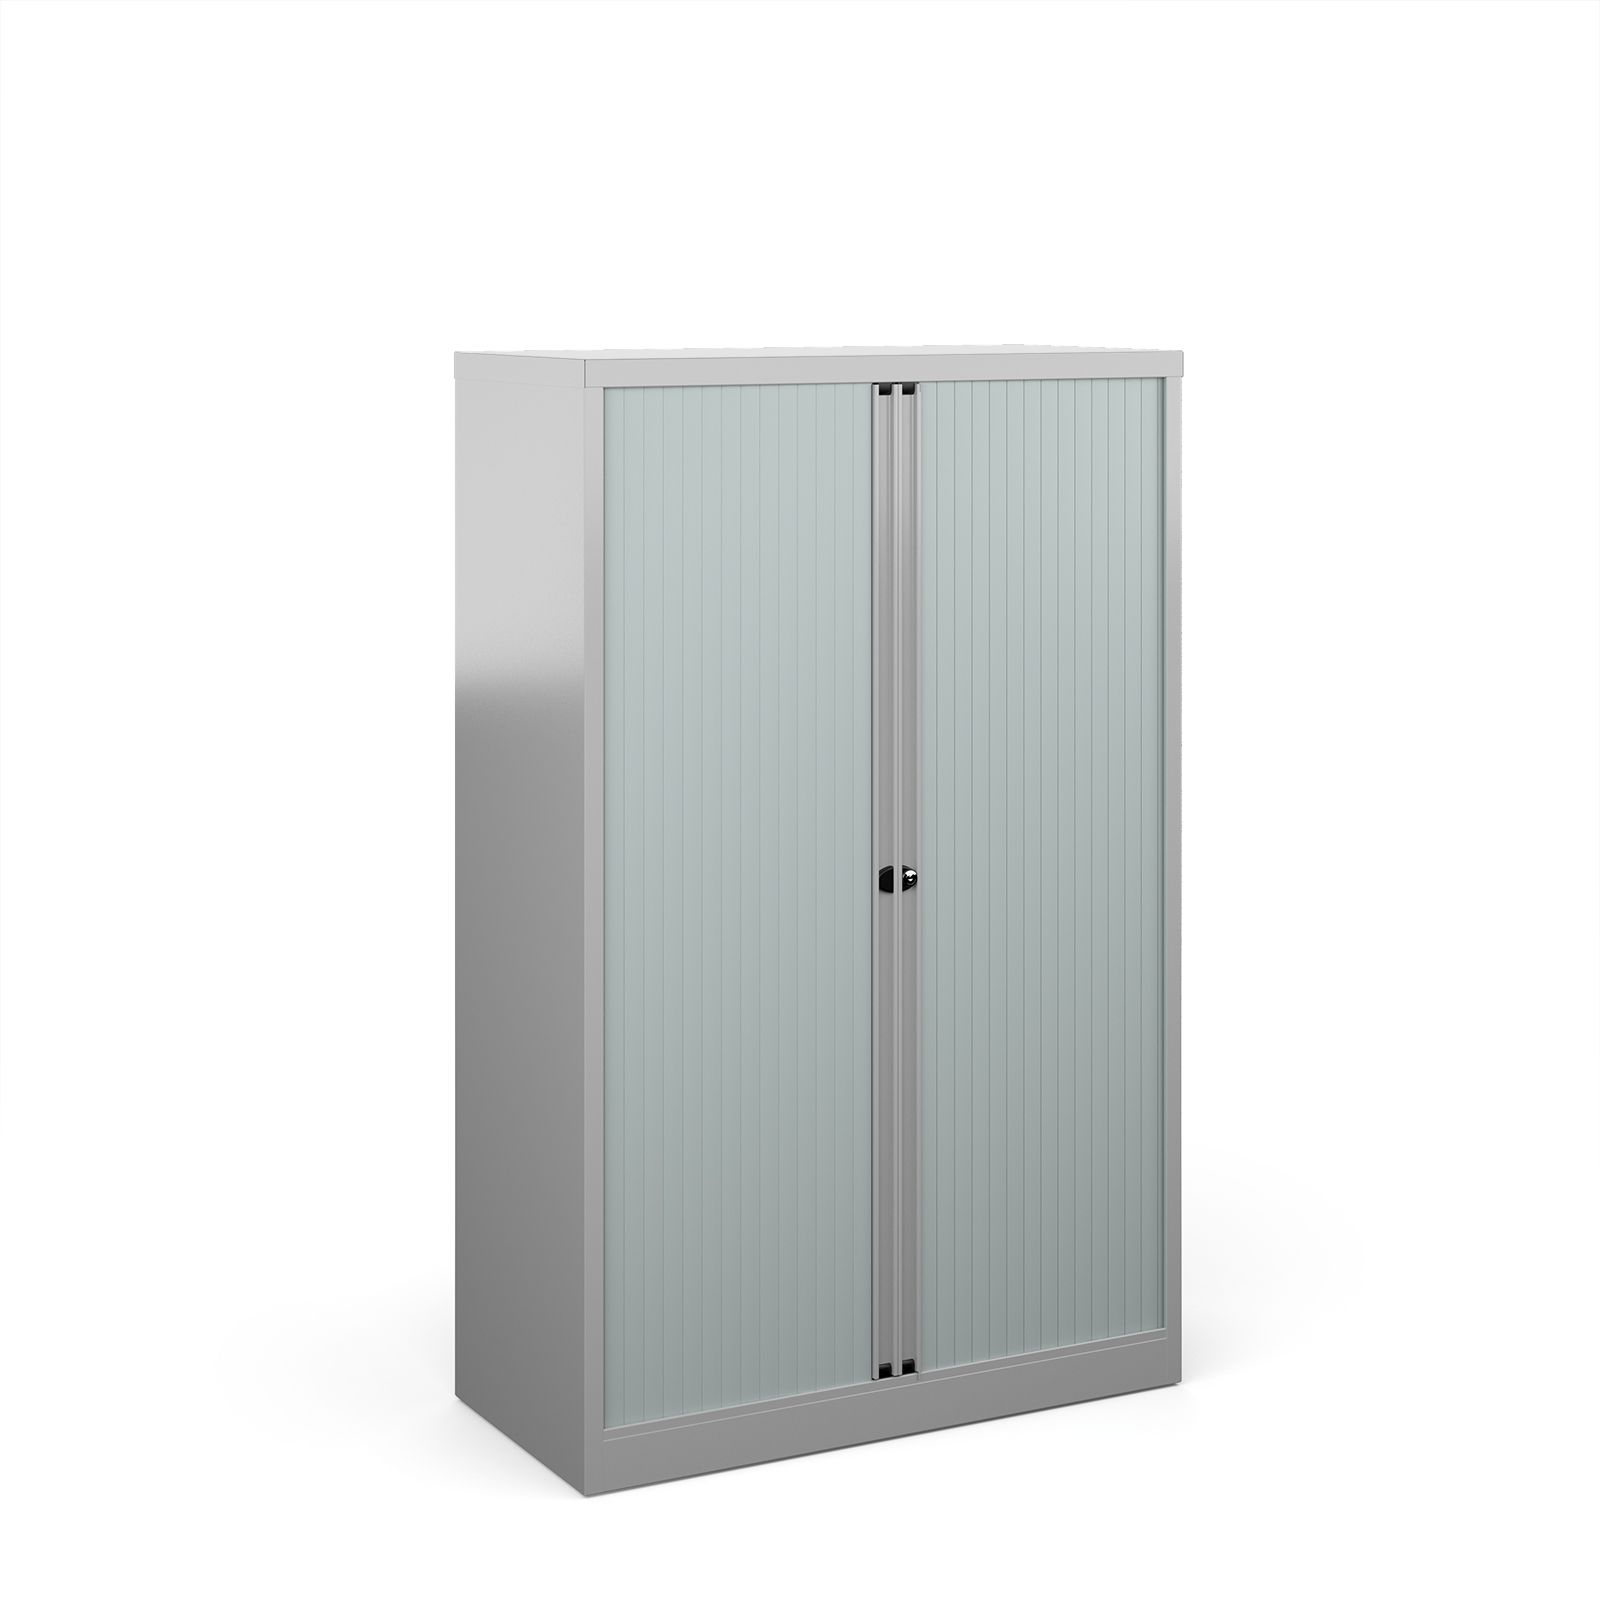 Over 1200mm High Bisley systems storage medium tambour cupboard 1570mm high - silver